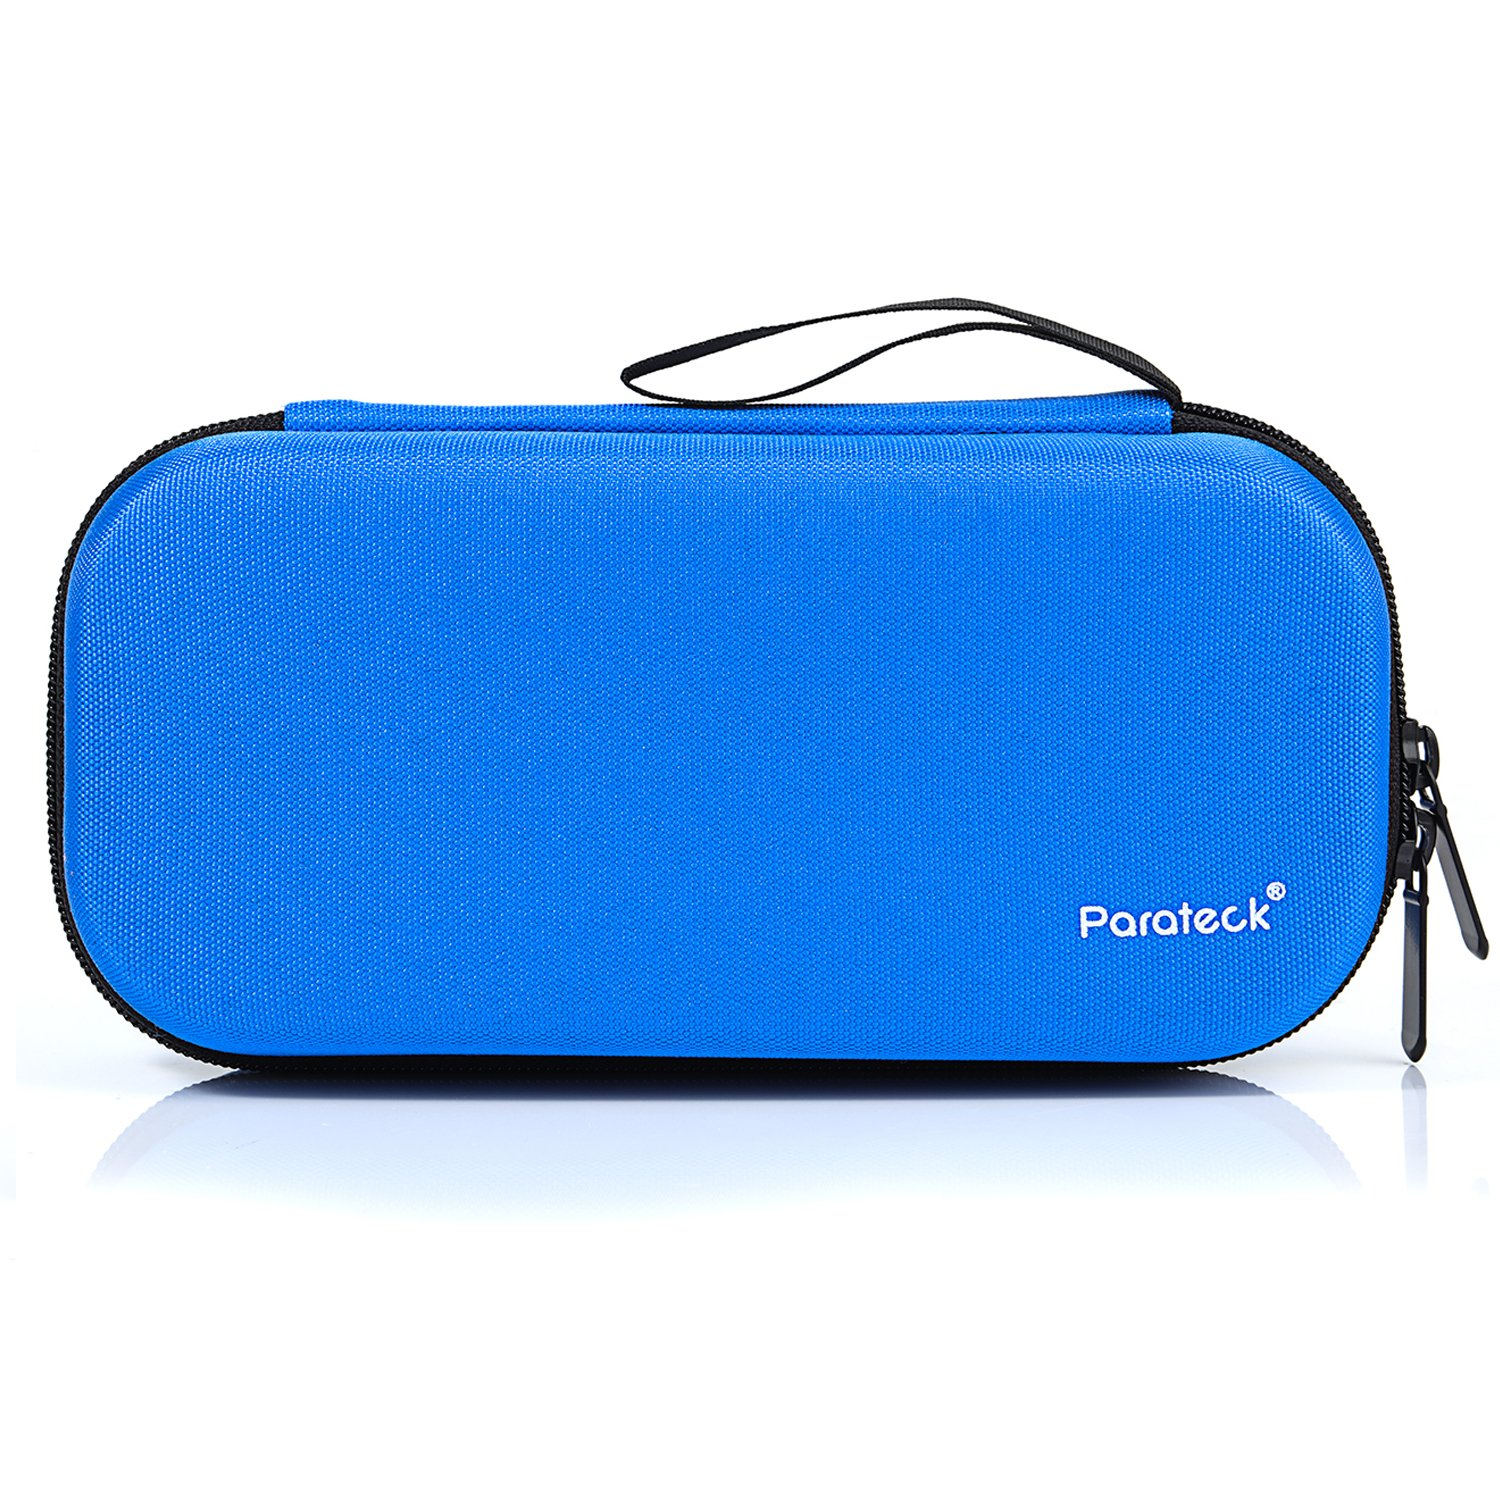 Insulin Cooler Case Temperature Display Diabetic Medical Travel Bag Insulated Cooling Case 3 Chill Pack 8 x 3.75 Inch (Blue)